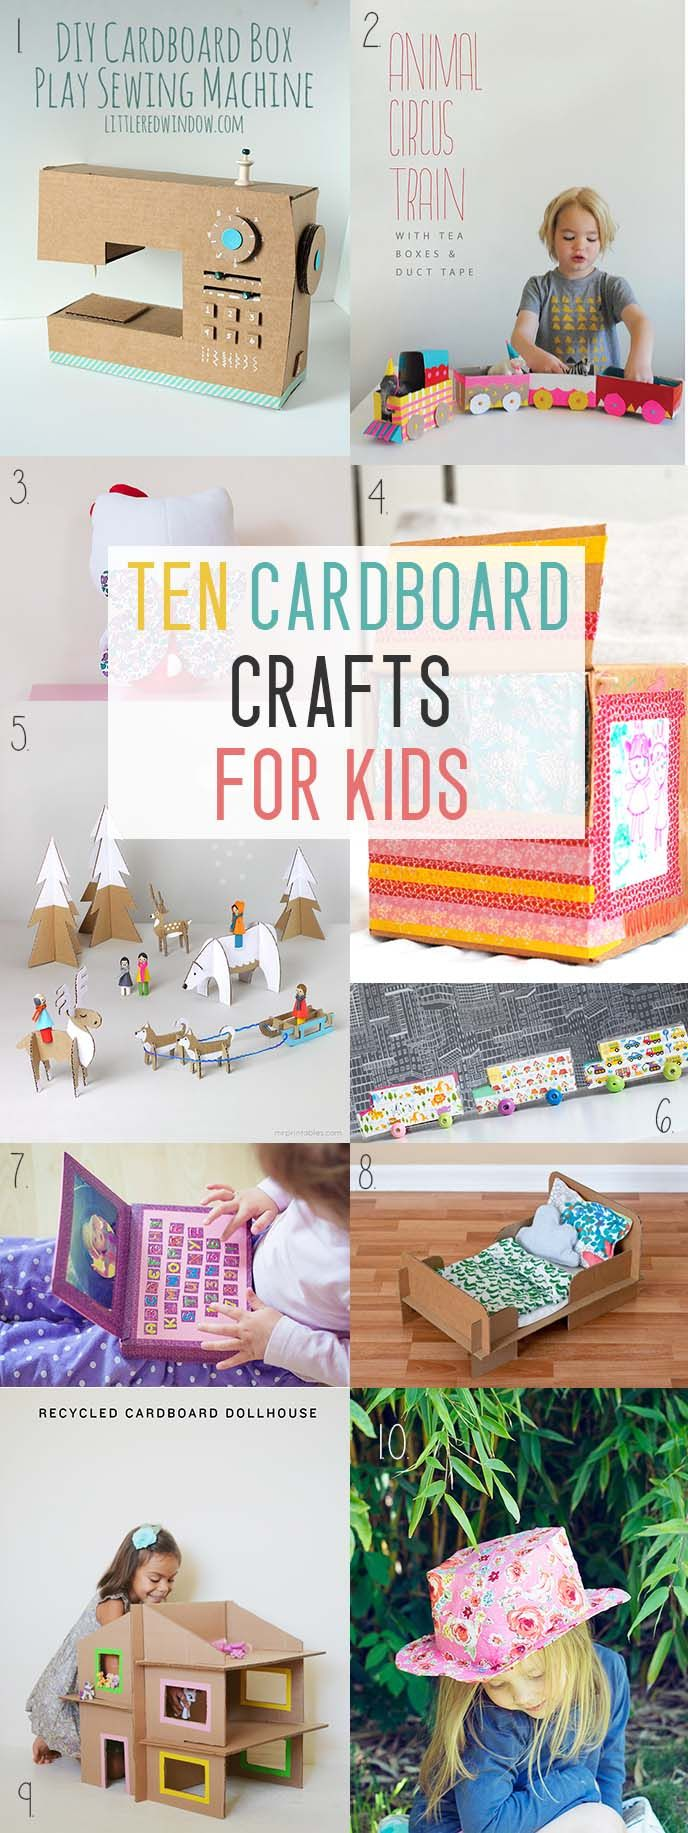 Ten Cardboard Crafts For Kids